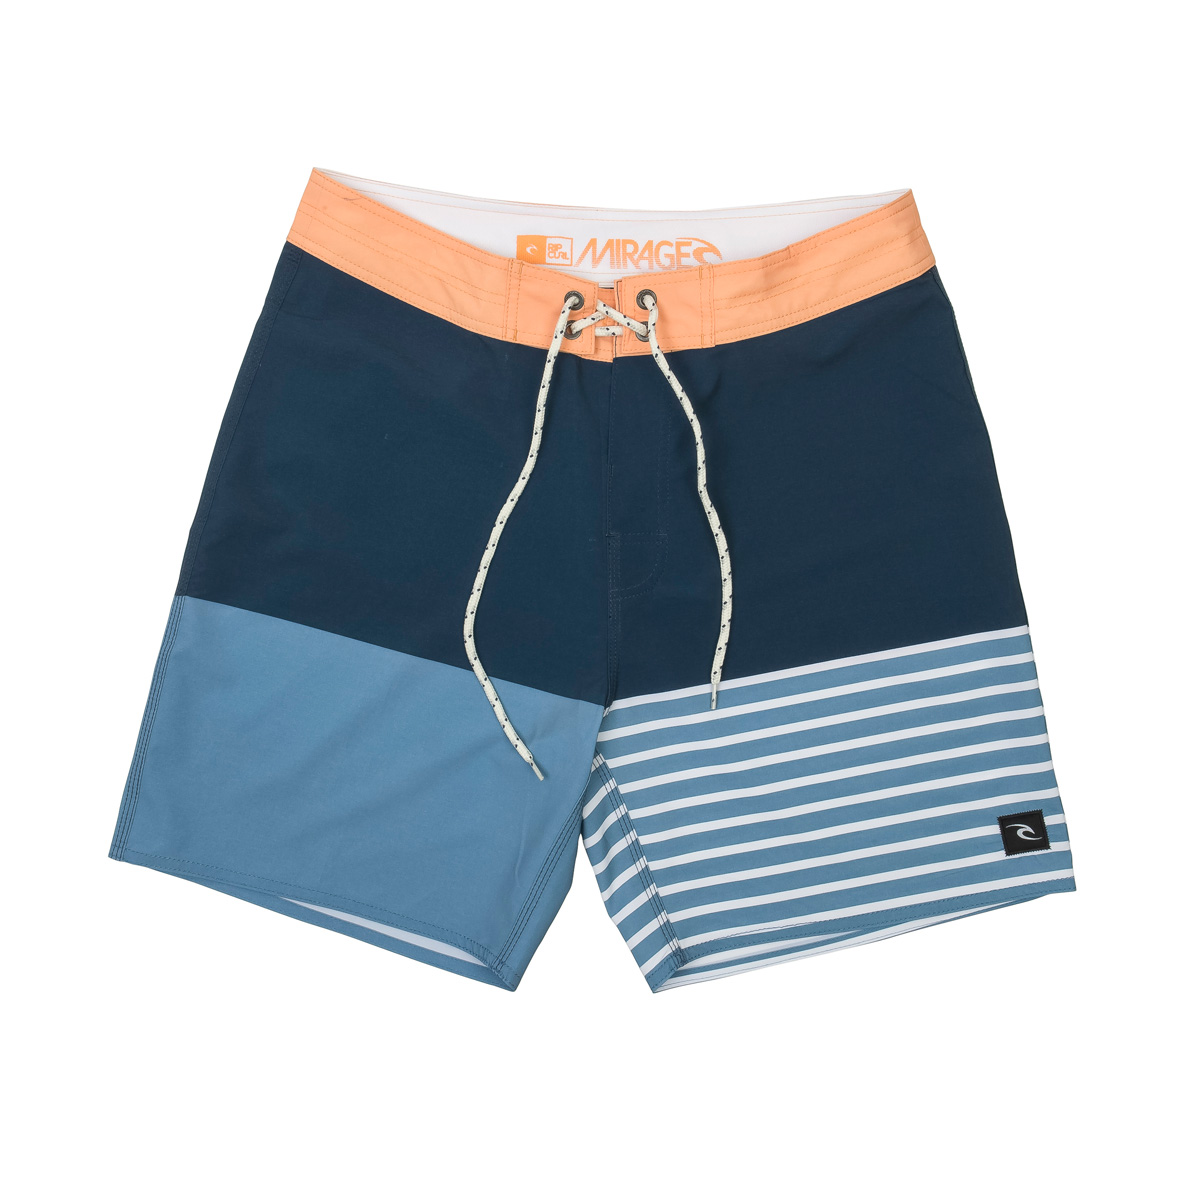 "Mirage Flash 18"""" Boardshort"